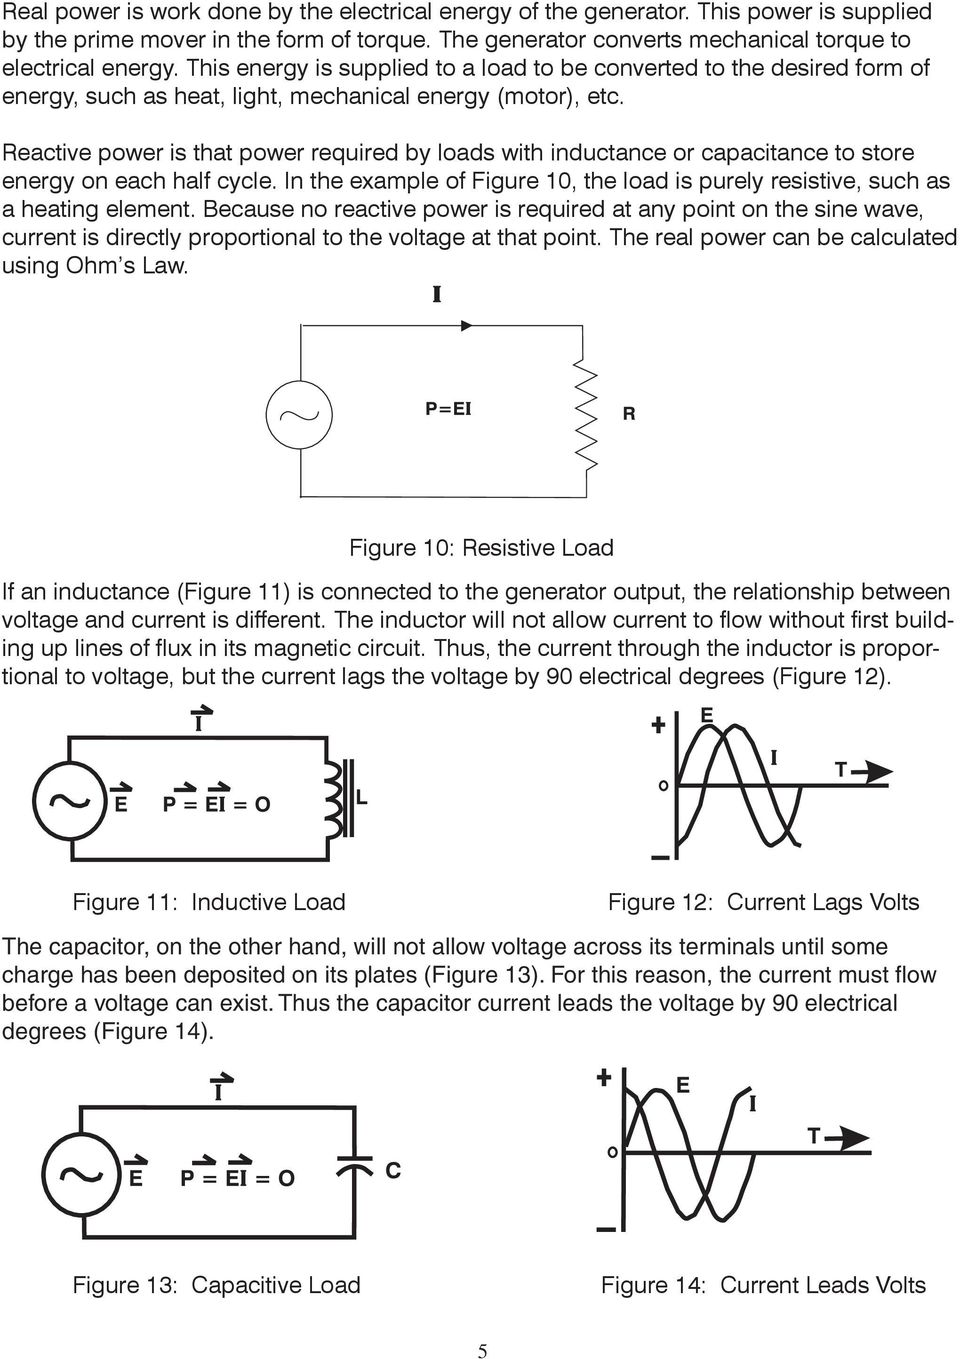 Reactive power is that power required by loads with inductance or capacitance to store energy on each half cycle. In the example of Figure 10, the load is purely resistive, such as a heating element.